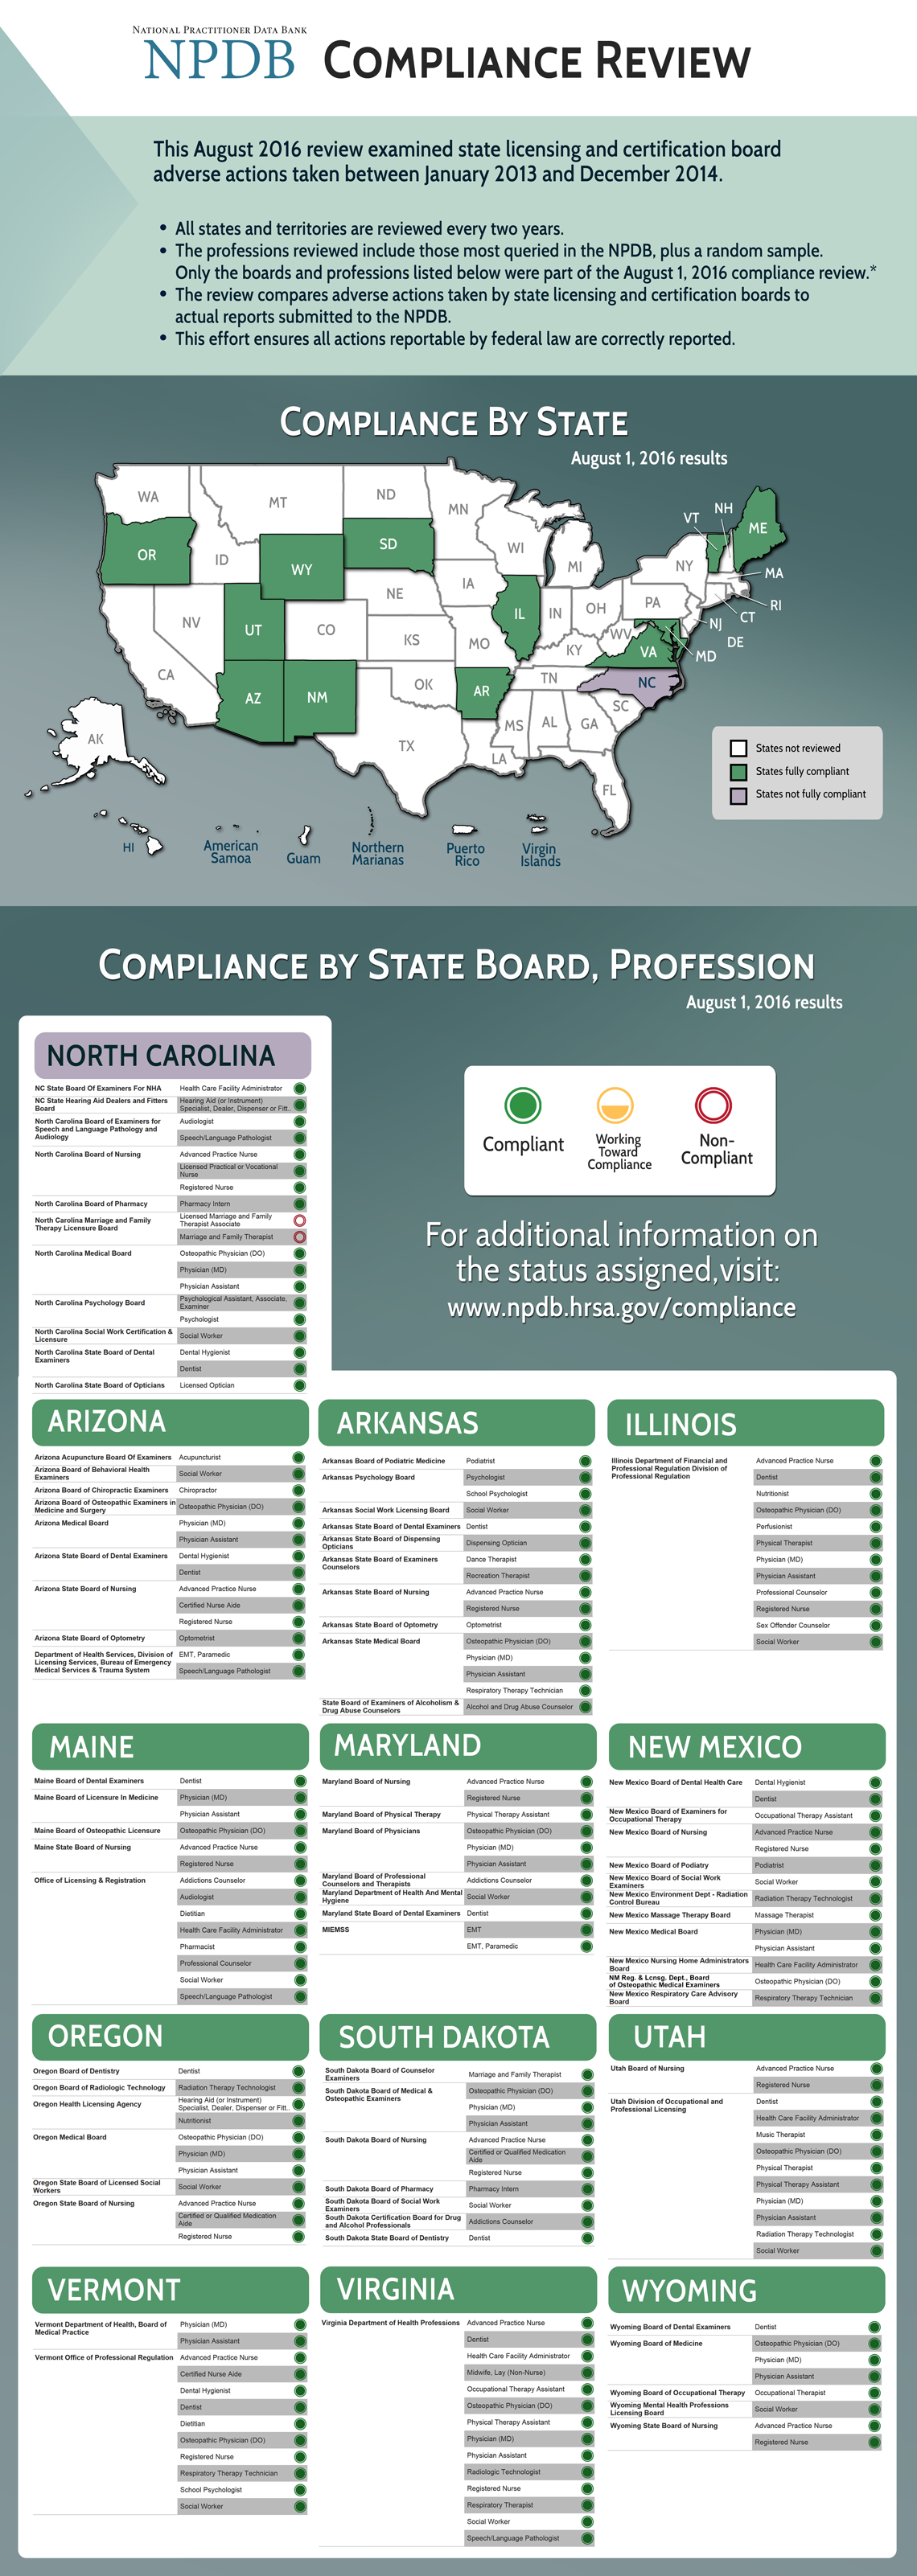 This image is the compliance review infographic. The August 2016 review examined state licensing board adverse actions taken between January 2013 and December 2014. All states and territories are reviewed every two years. The professions reviewed include those most queried in the NPDB, plus a random sample. The review compares adverse actions taken by state licensing and certification boards to actual reports submitted to the NPDB. The effort ensures all actions reportable by federal law are correctly reported. The statistics in this infographic can be found on the Compliance Status by State webpage linked to below the infographic.